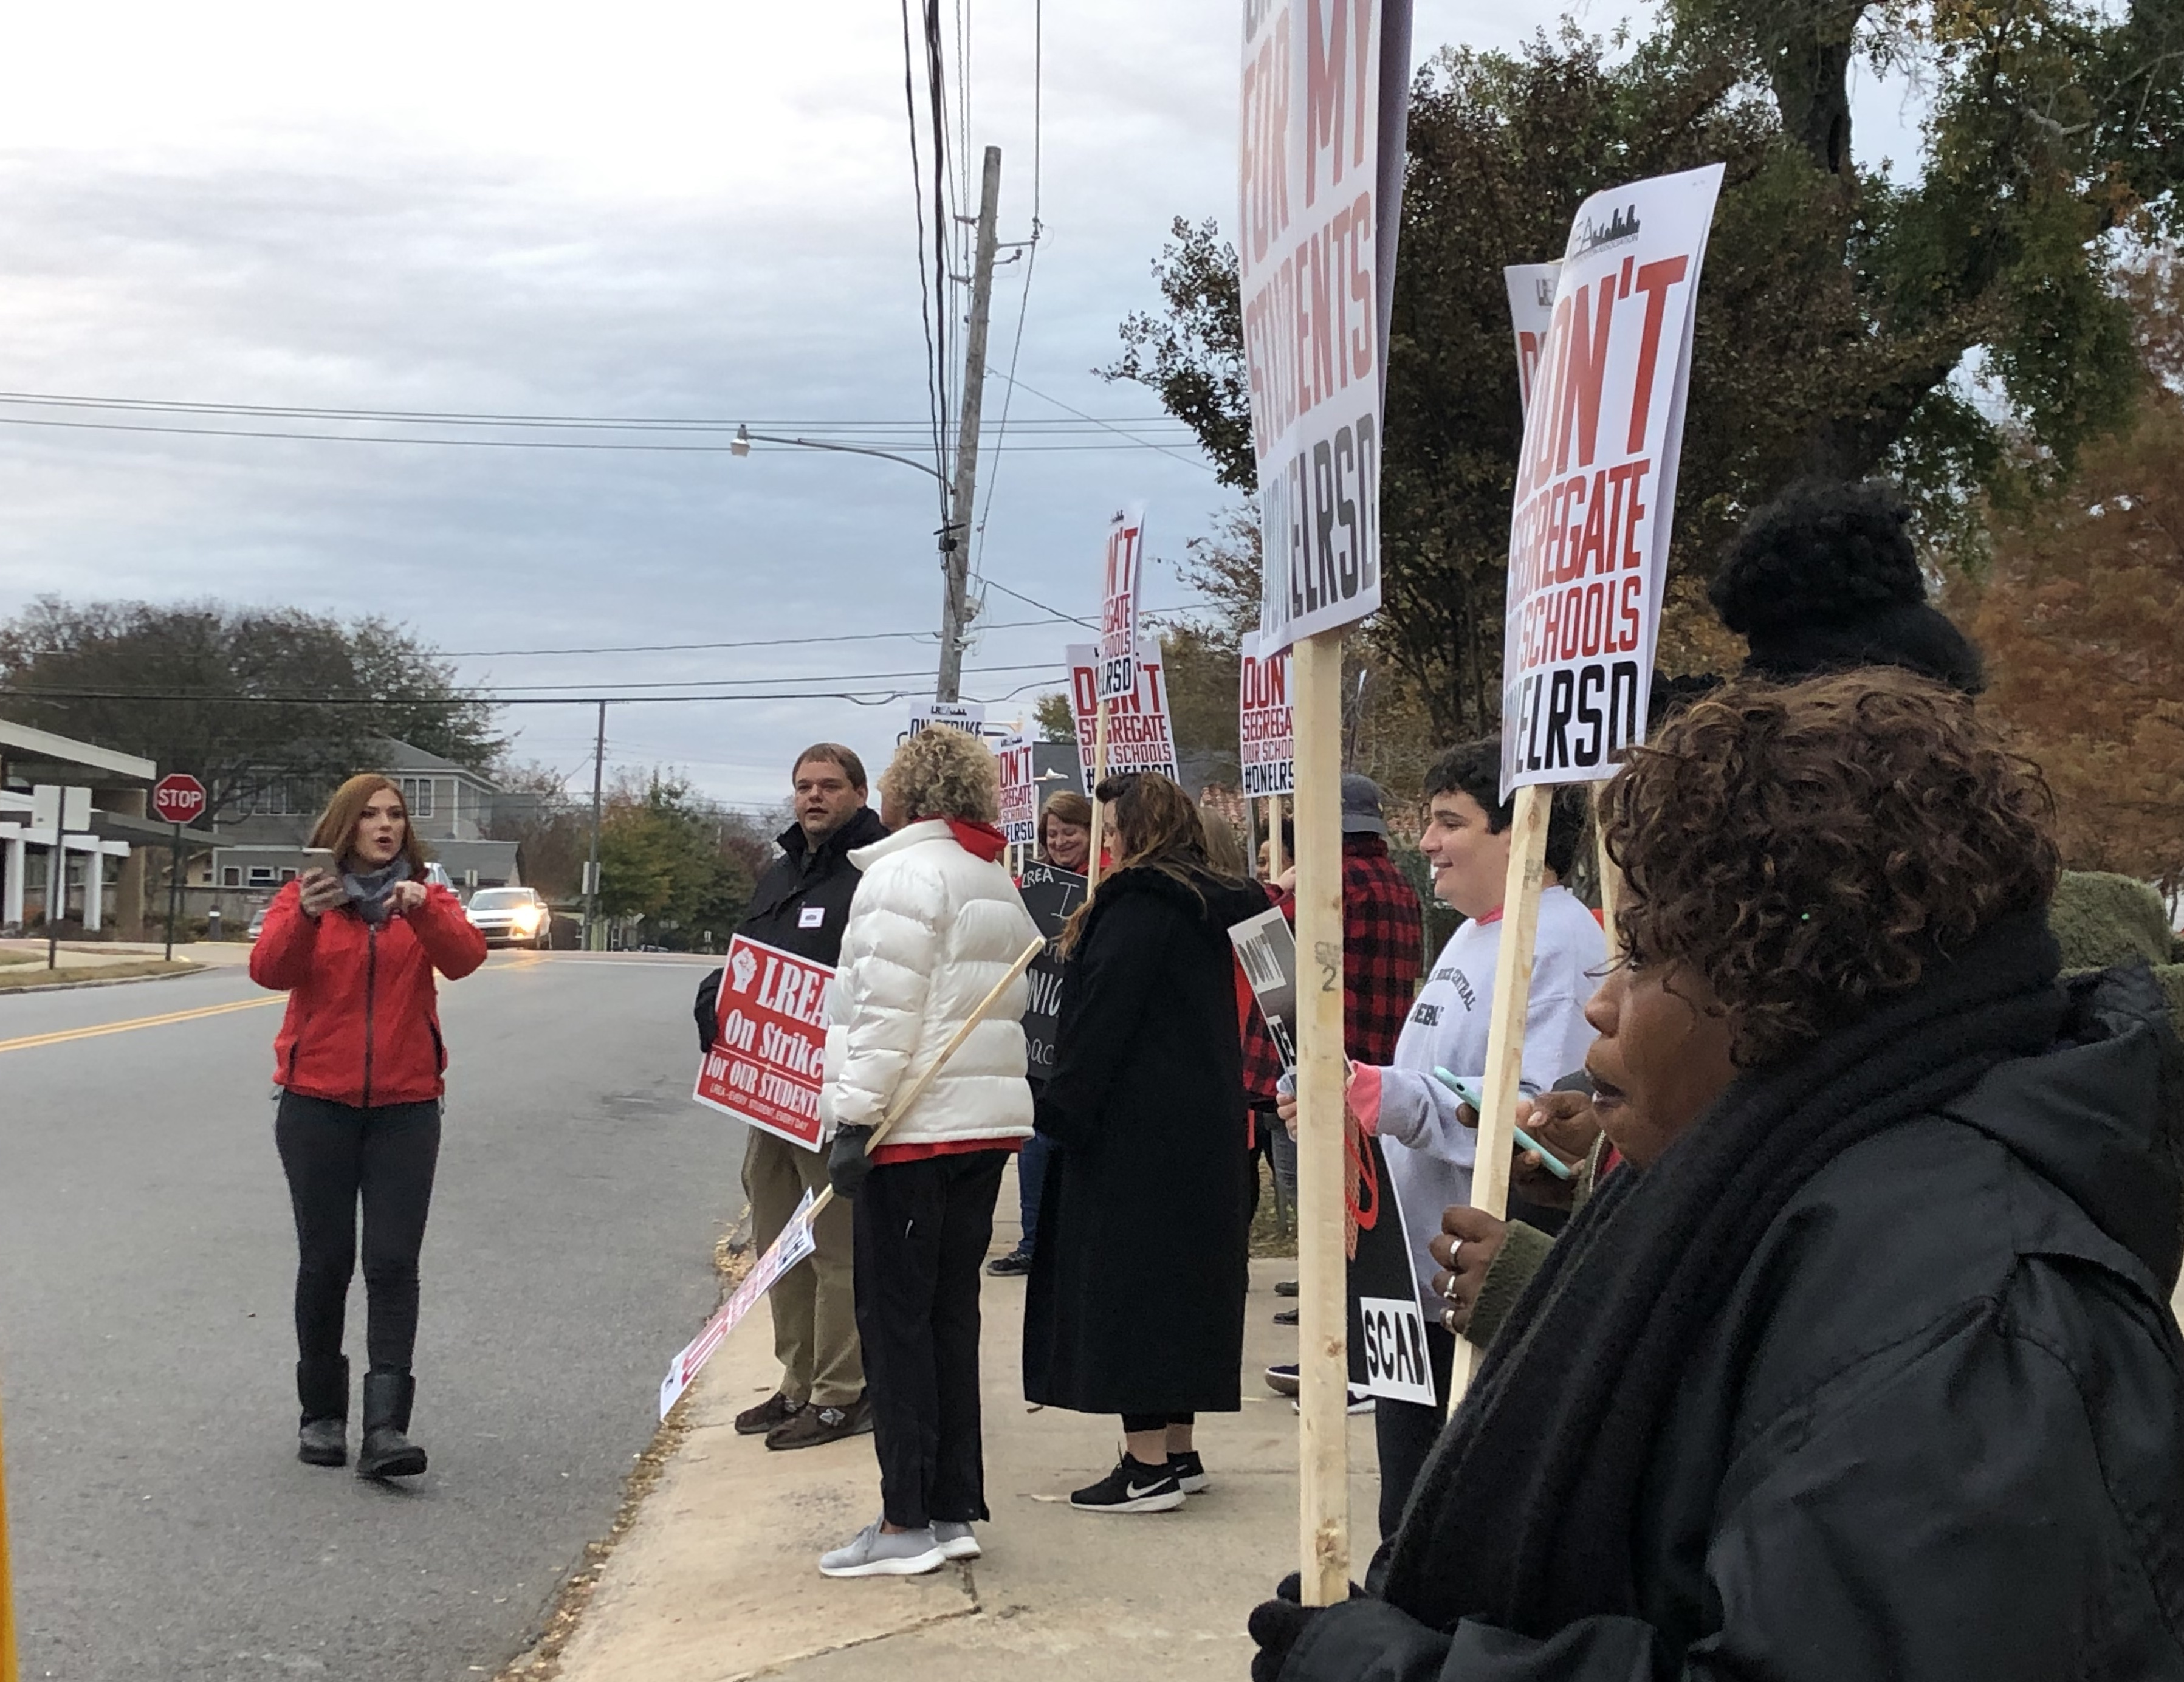 LATEST ON TEACHER STRIKE: Picket lines form at Little Rock School District campuses